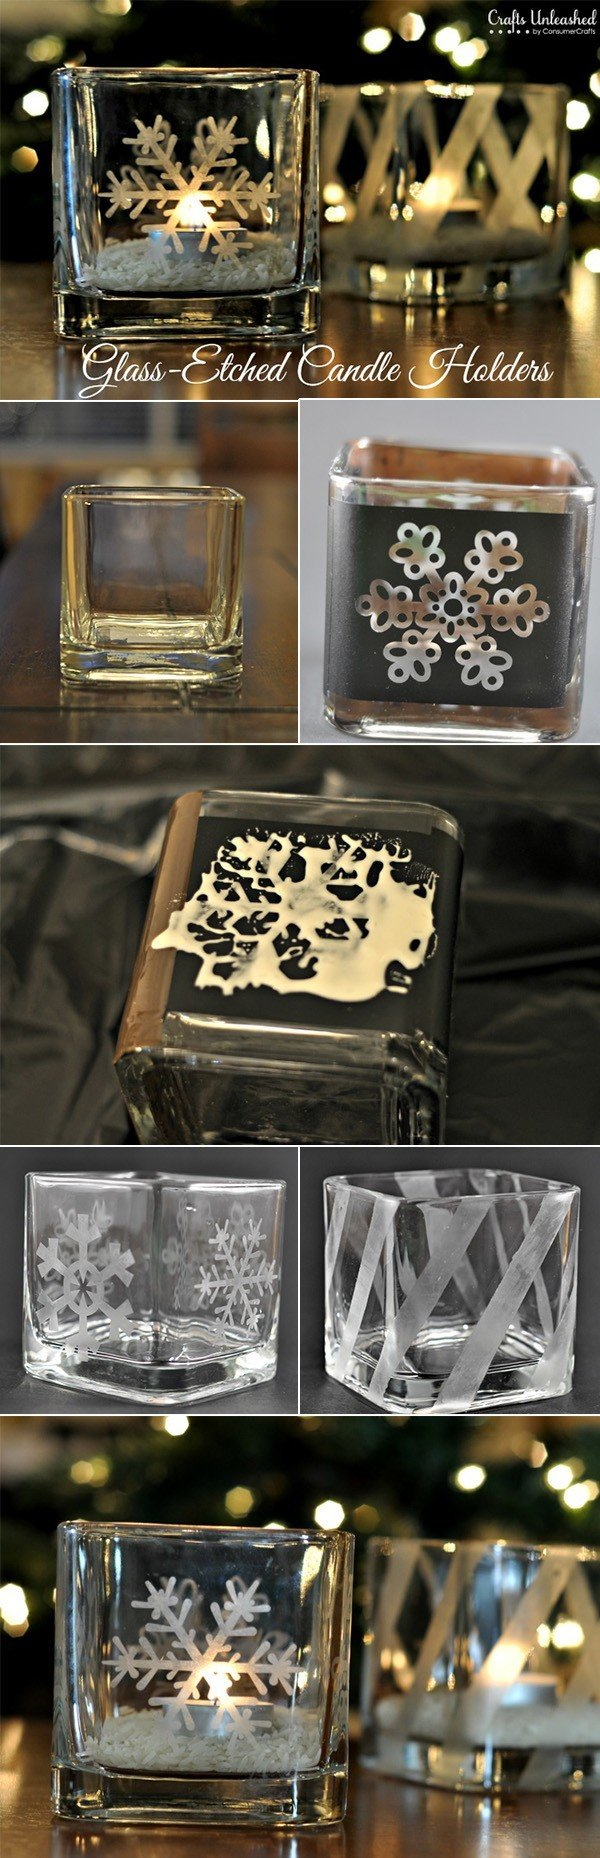 diy glass candle holders for wedding decorations